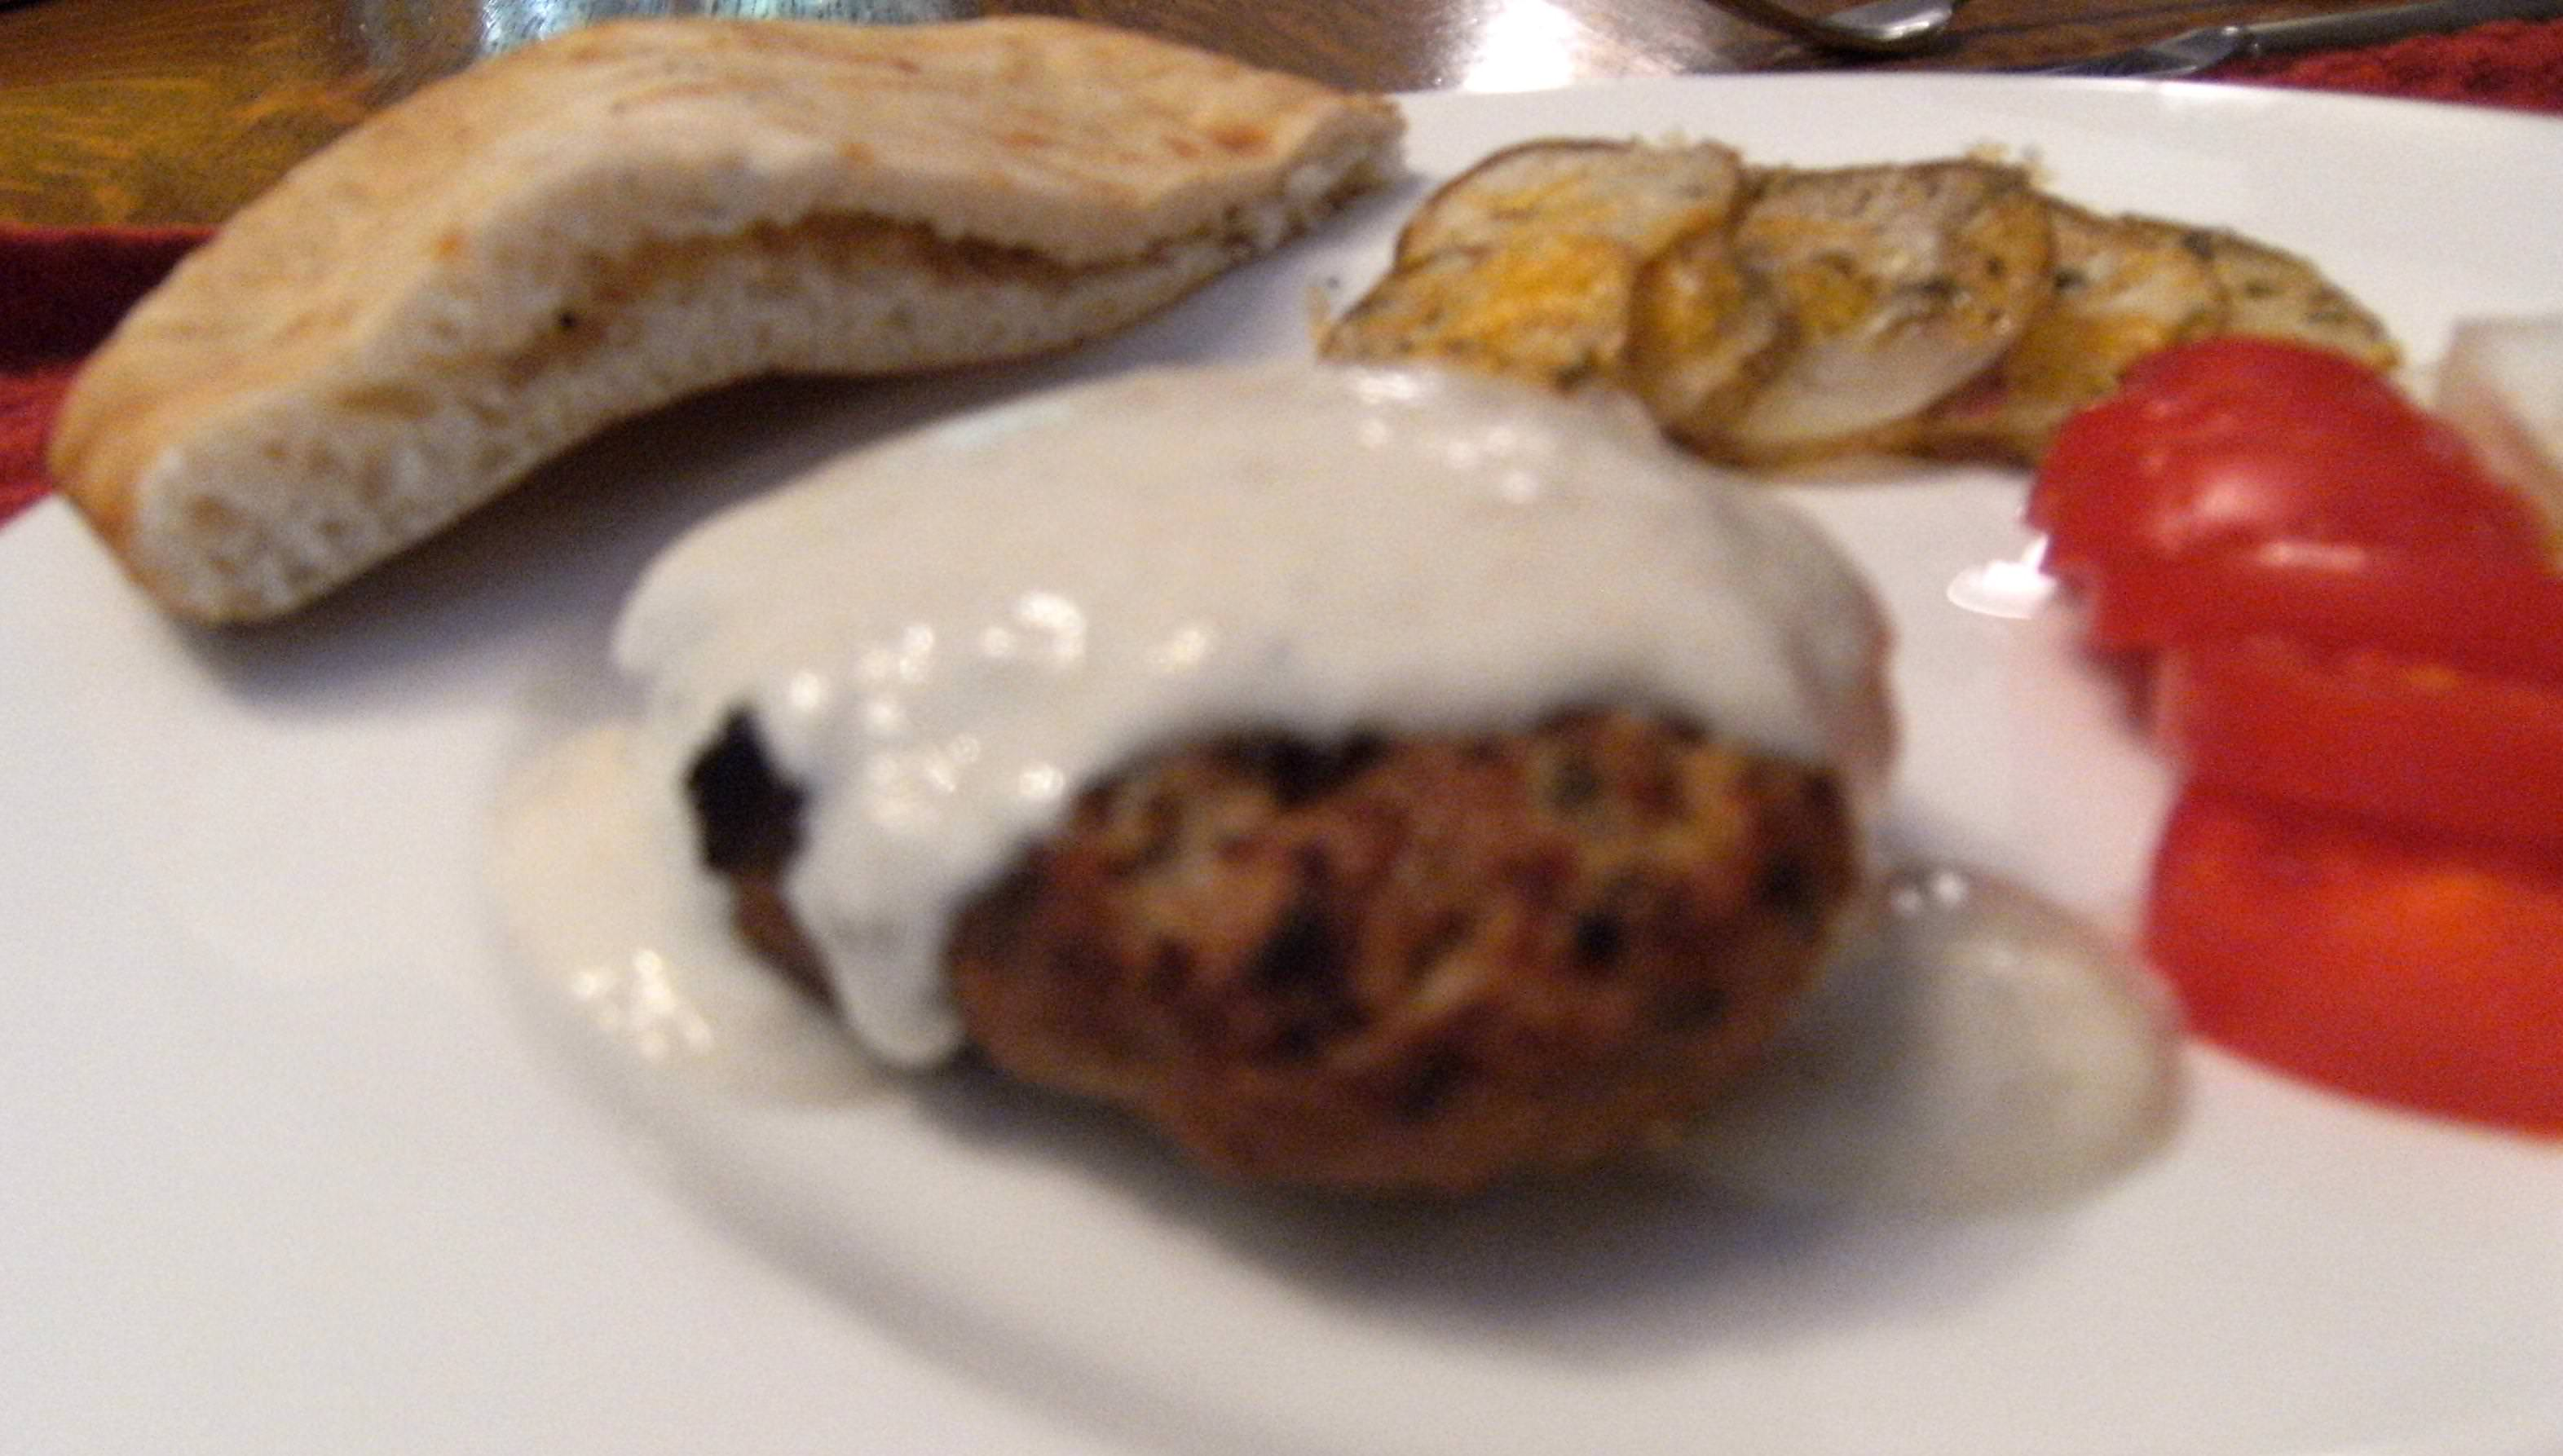 Kafta (also spelled Kofta or Kufta) is an ethnic dish made from any of a variety of ground meats. Primarily, lamb, pork or beef are used. Get the recipe to make Kafta with Tahini Yogurt Sauce on ComfortablyDomestic.com